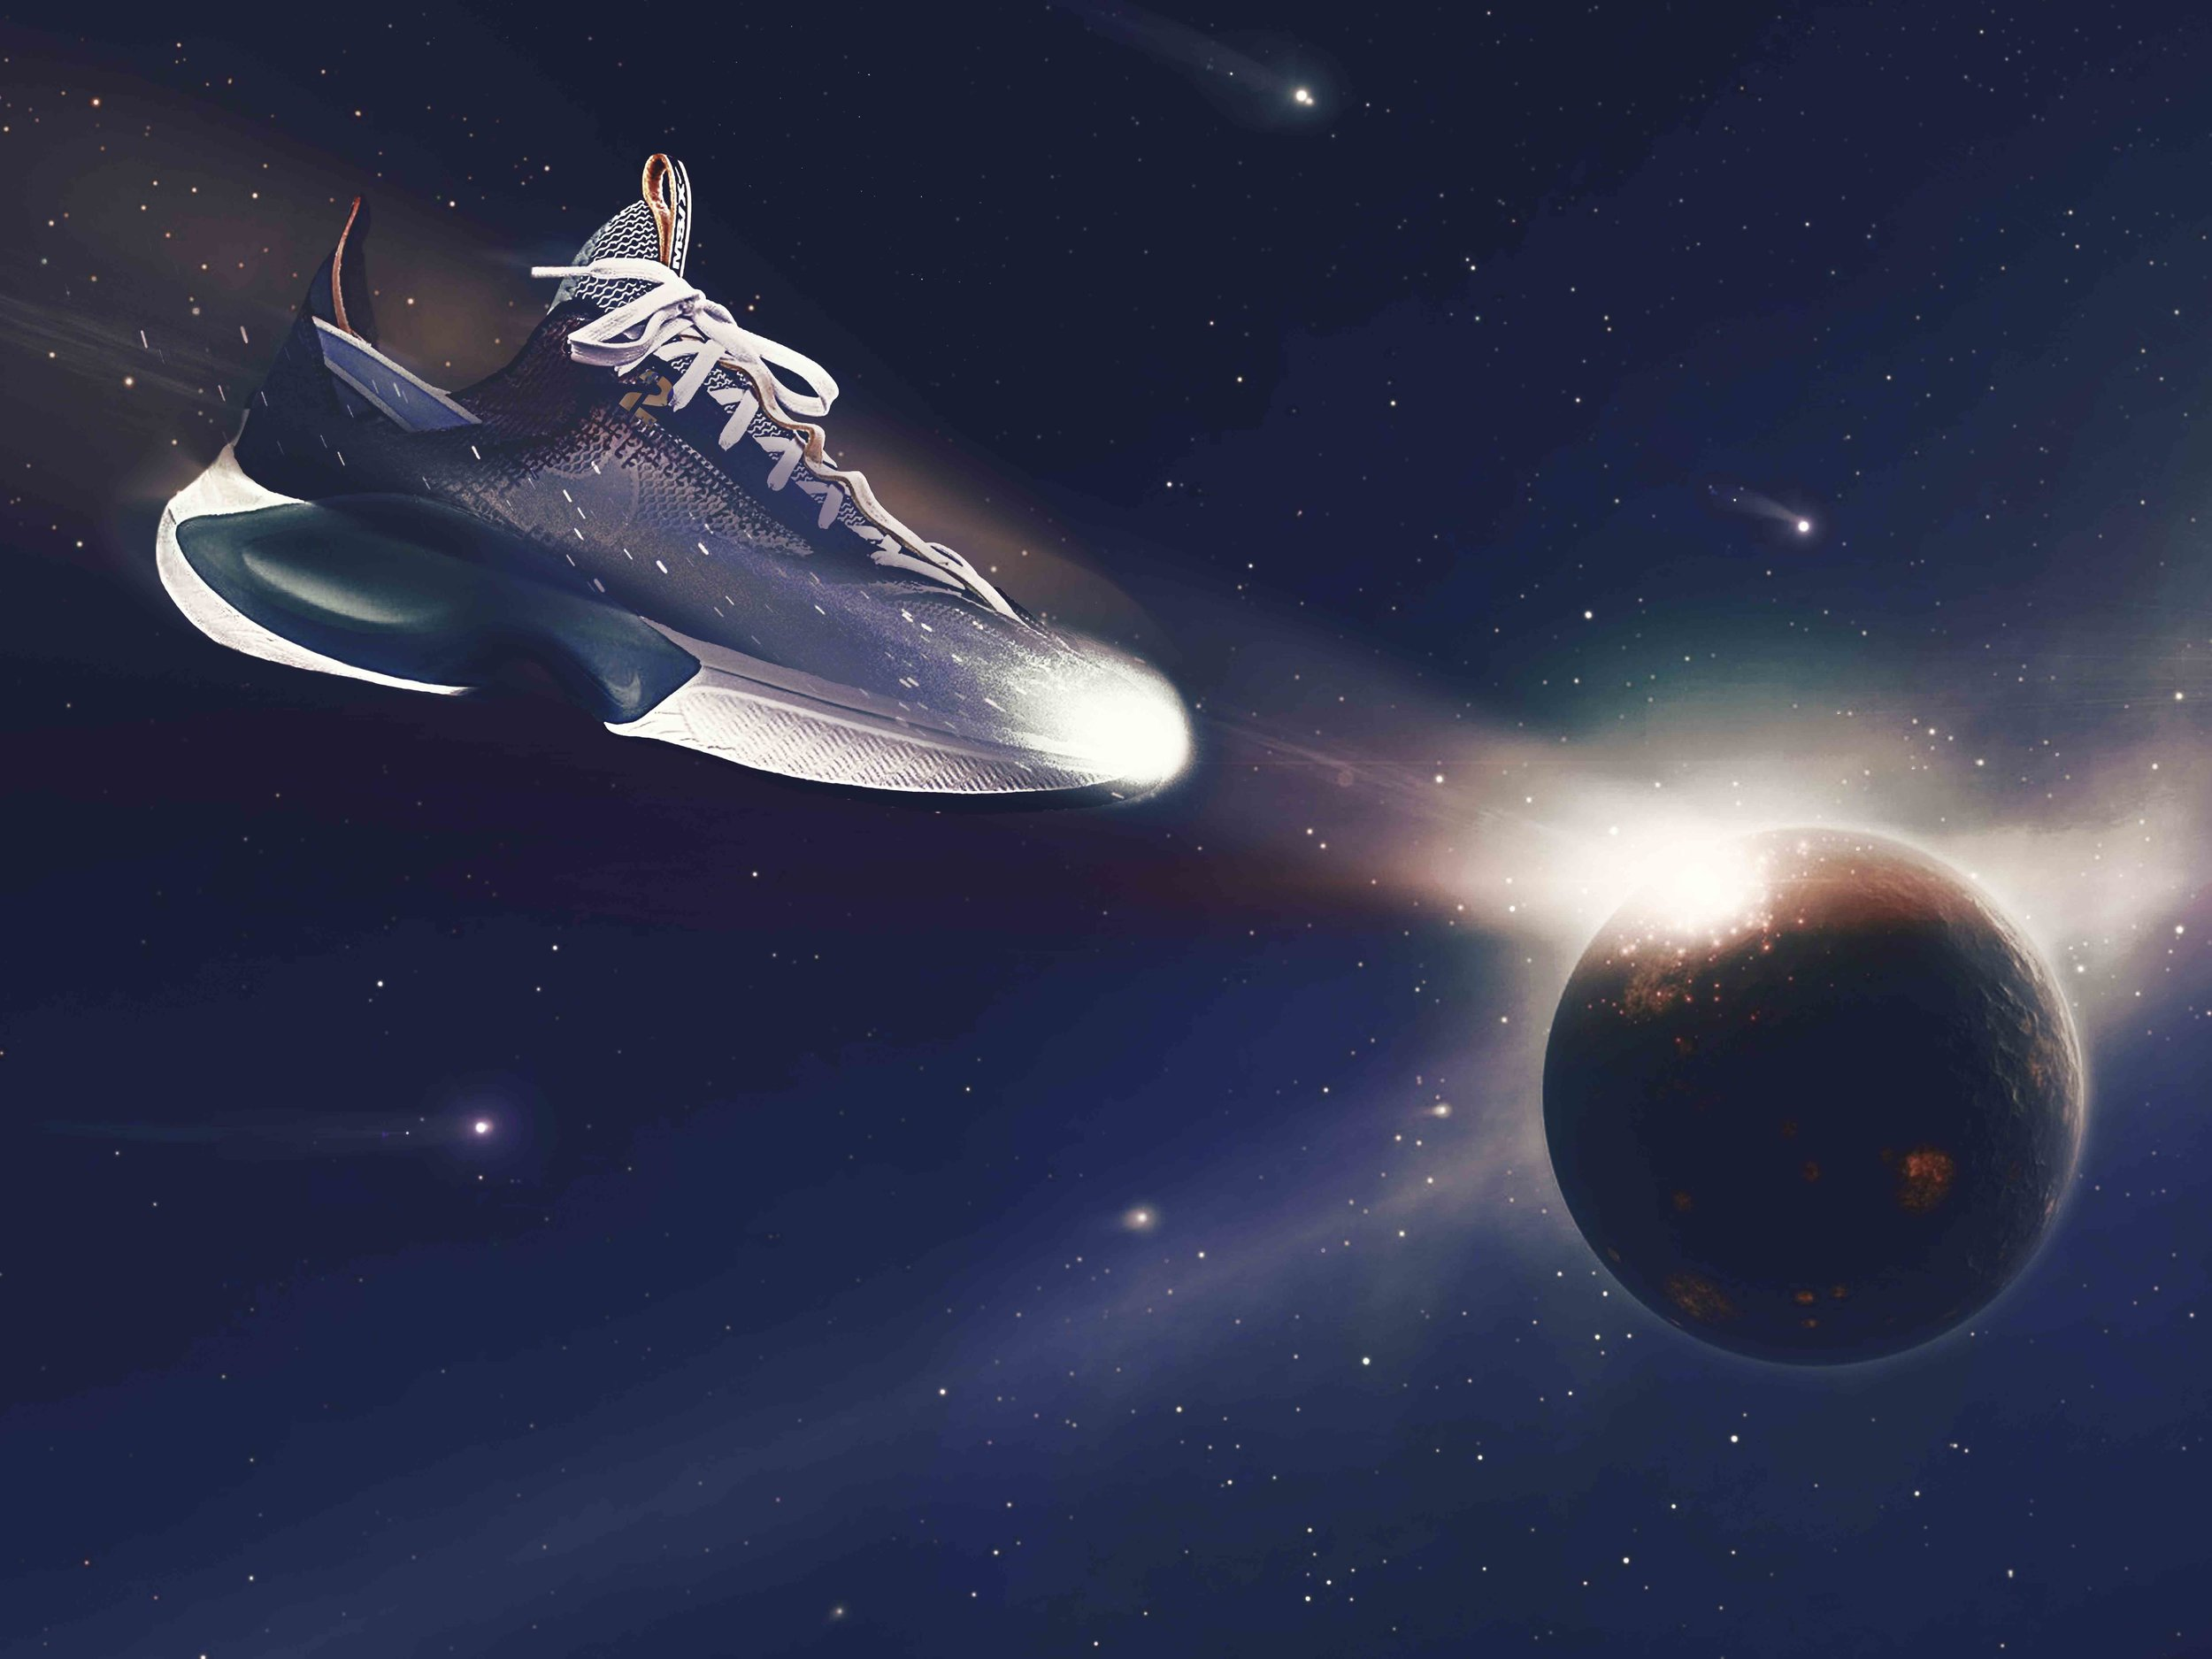 Had a blast editing @nike new D/MS /X N110 ☄️which dropped last week in Europe. An out of this world sneaker deserves an out of this world edit!!